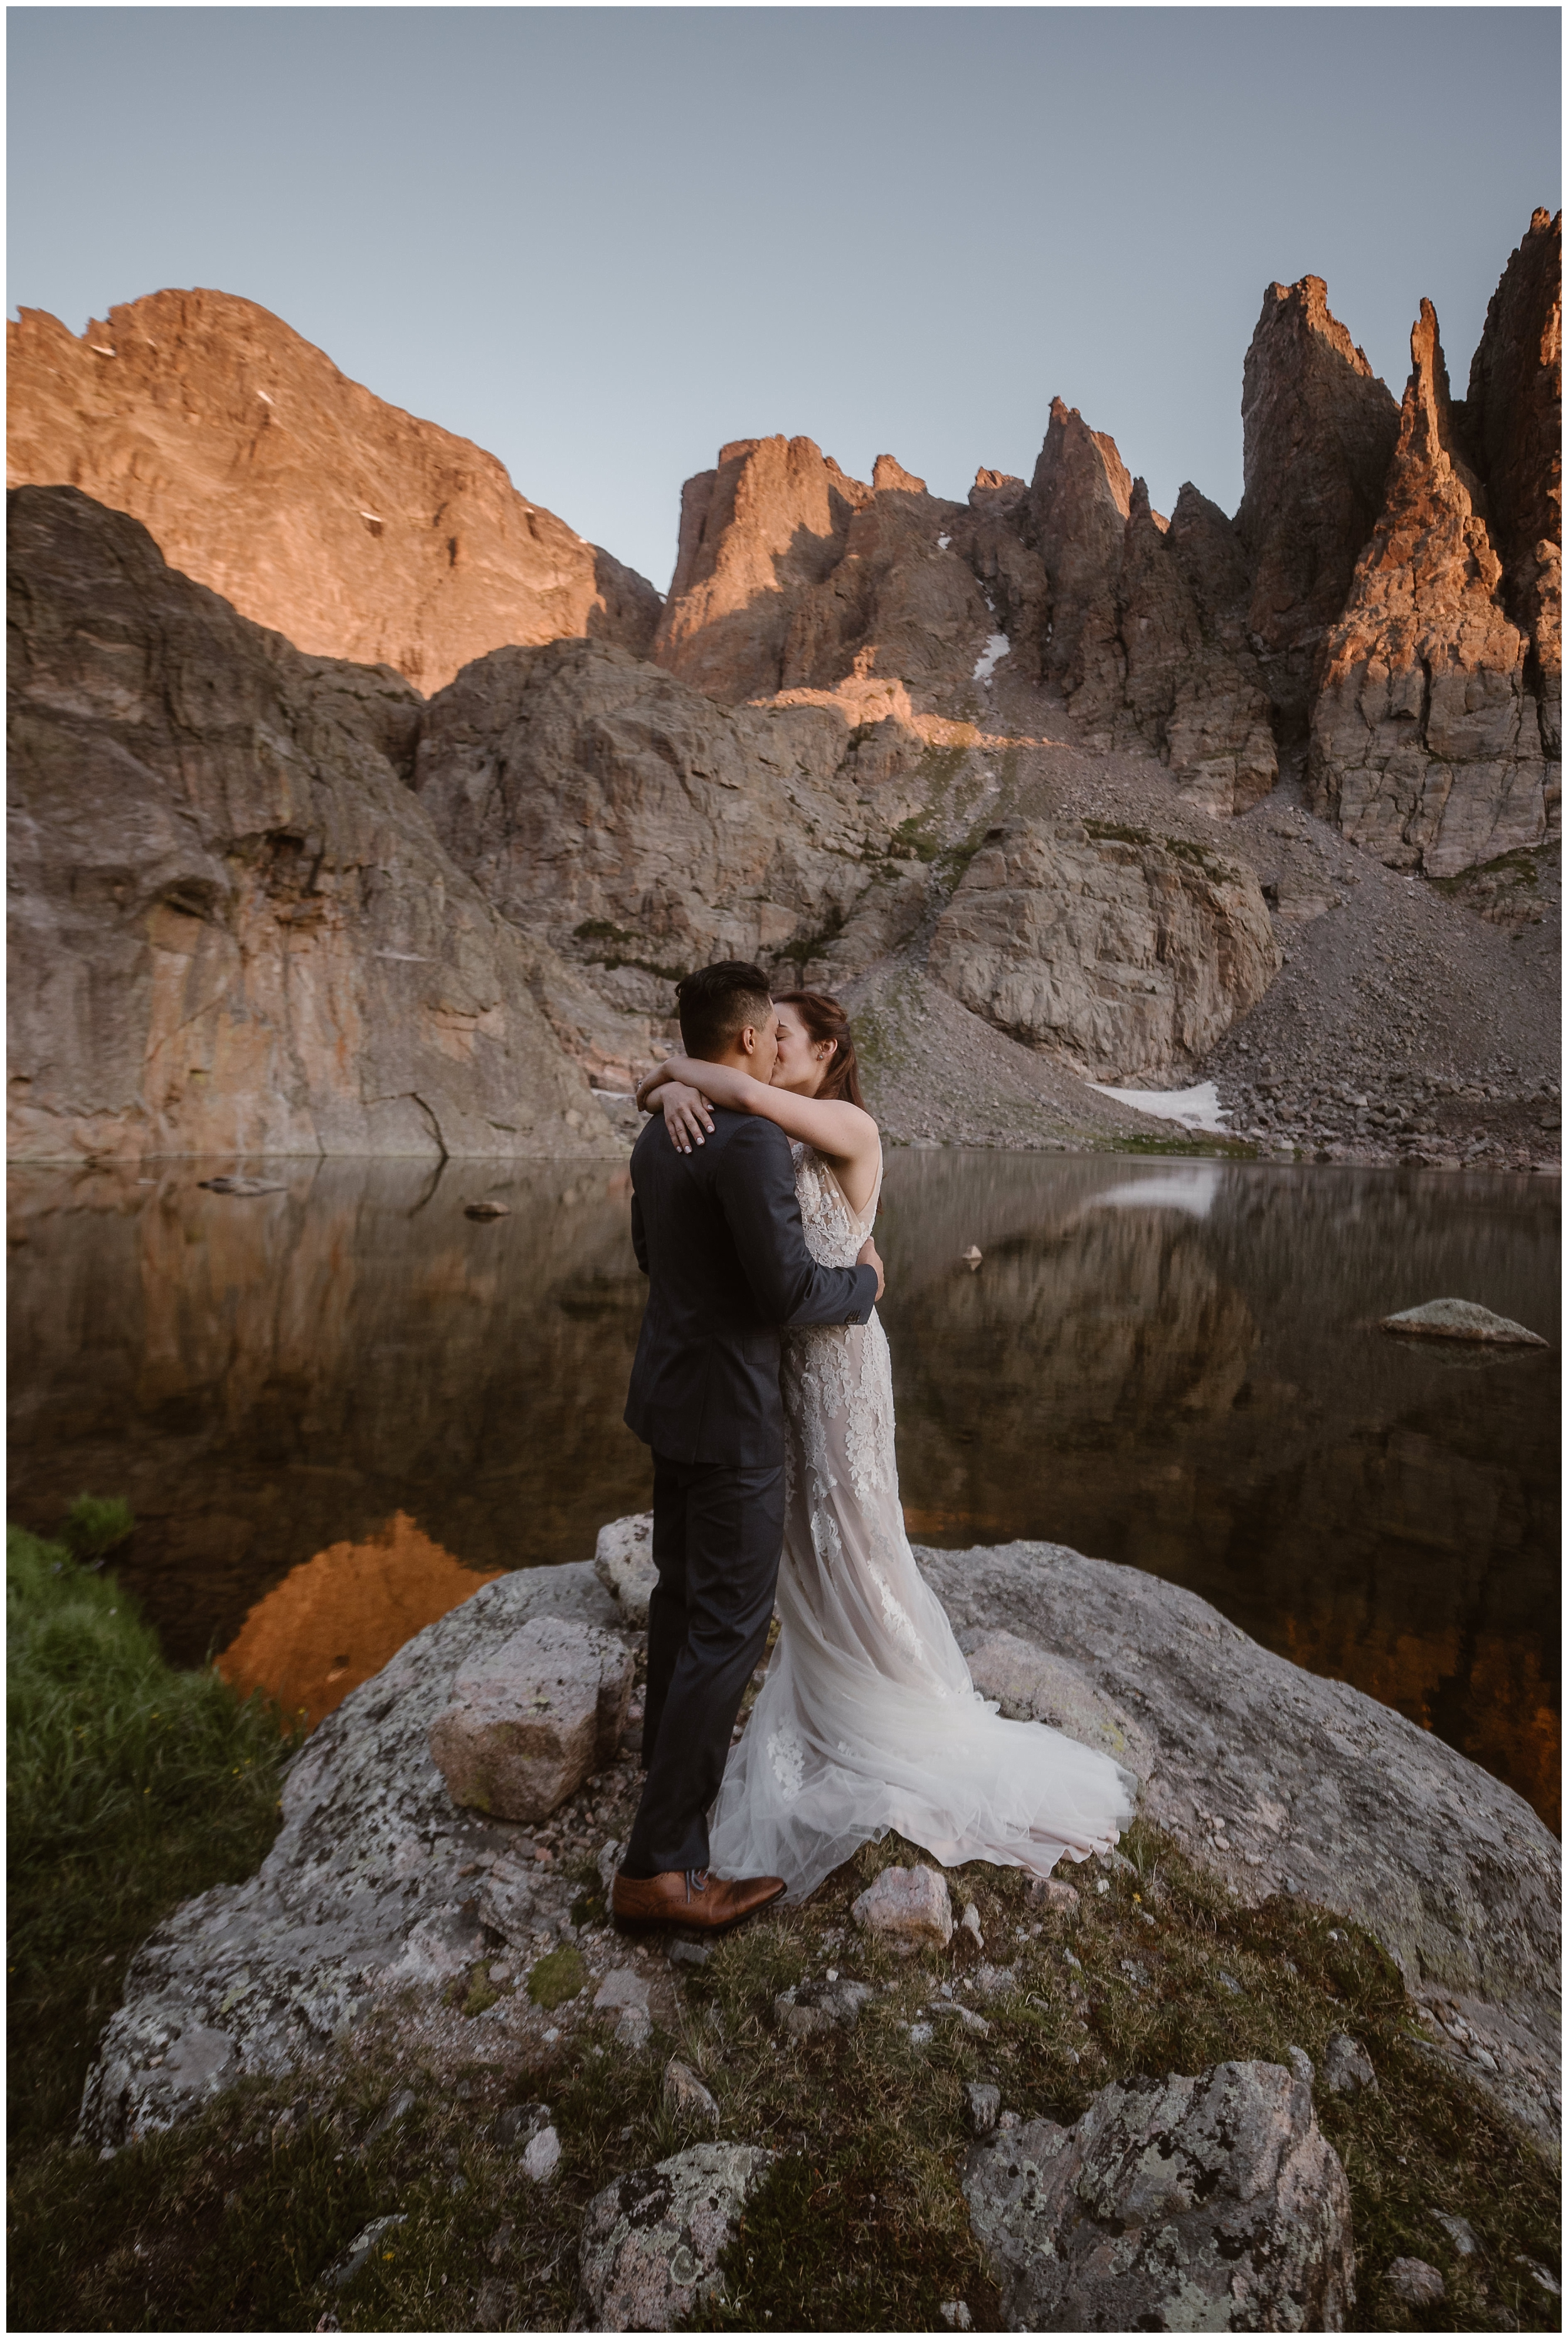 A bride and groom embrace and kiss as they stand on a granite and mossy rock on the edge of an alpine lake. All around them, giant mountain crags peek up toward the sky. Eloping where and when you want are some of the best elopement ideas to consider for your small simple wedding.